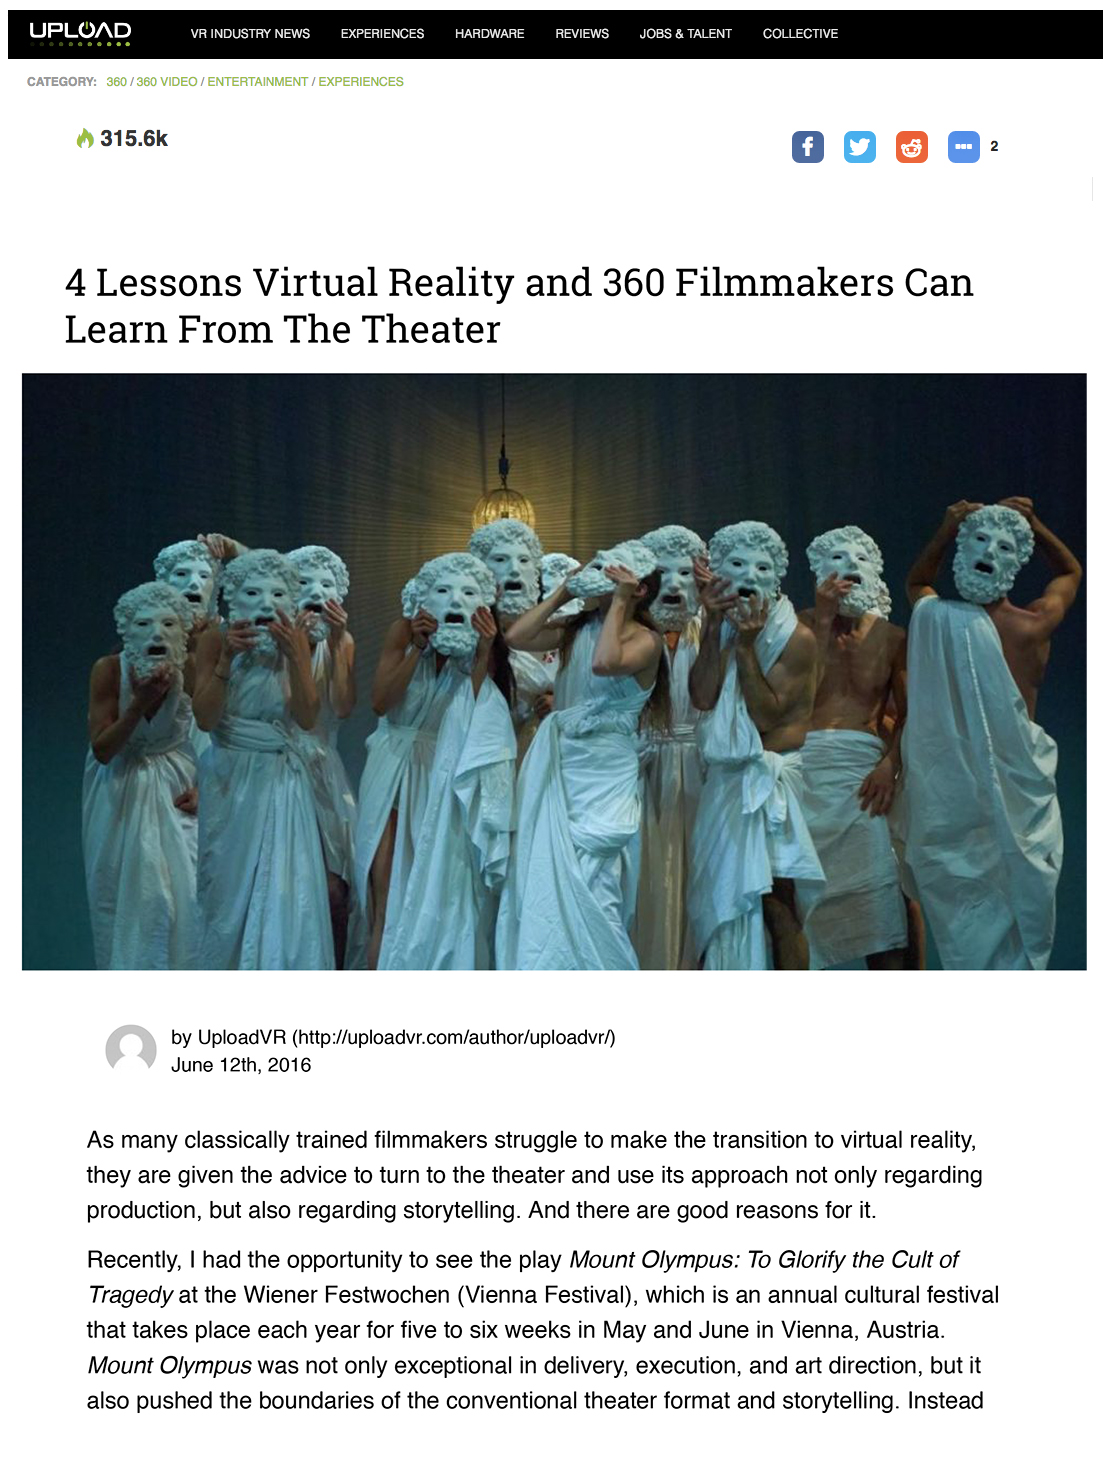 4 Lessons VR and 360 Video Filmmakers Can Learn From the Theater-1.jpg